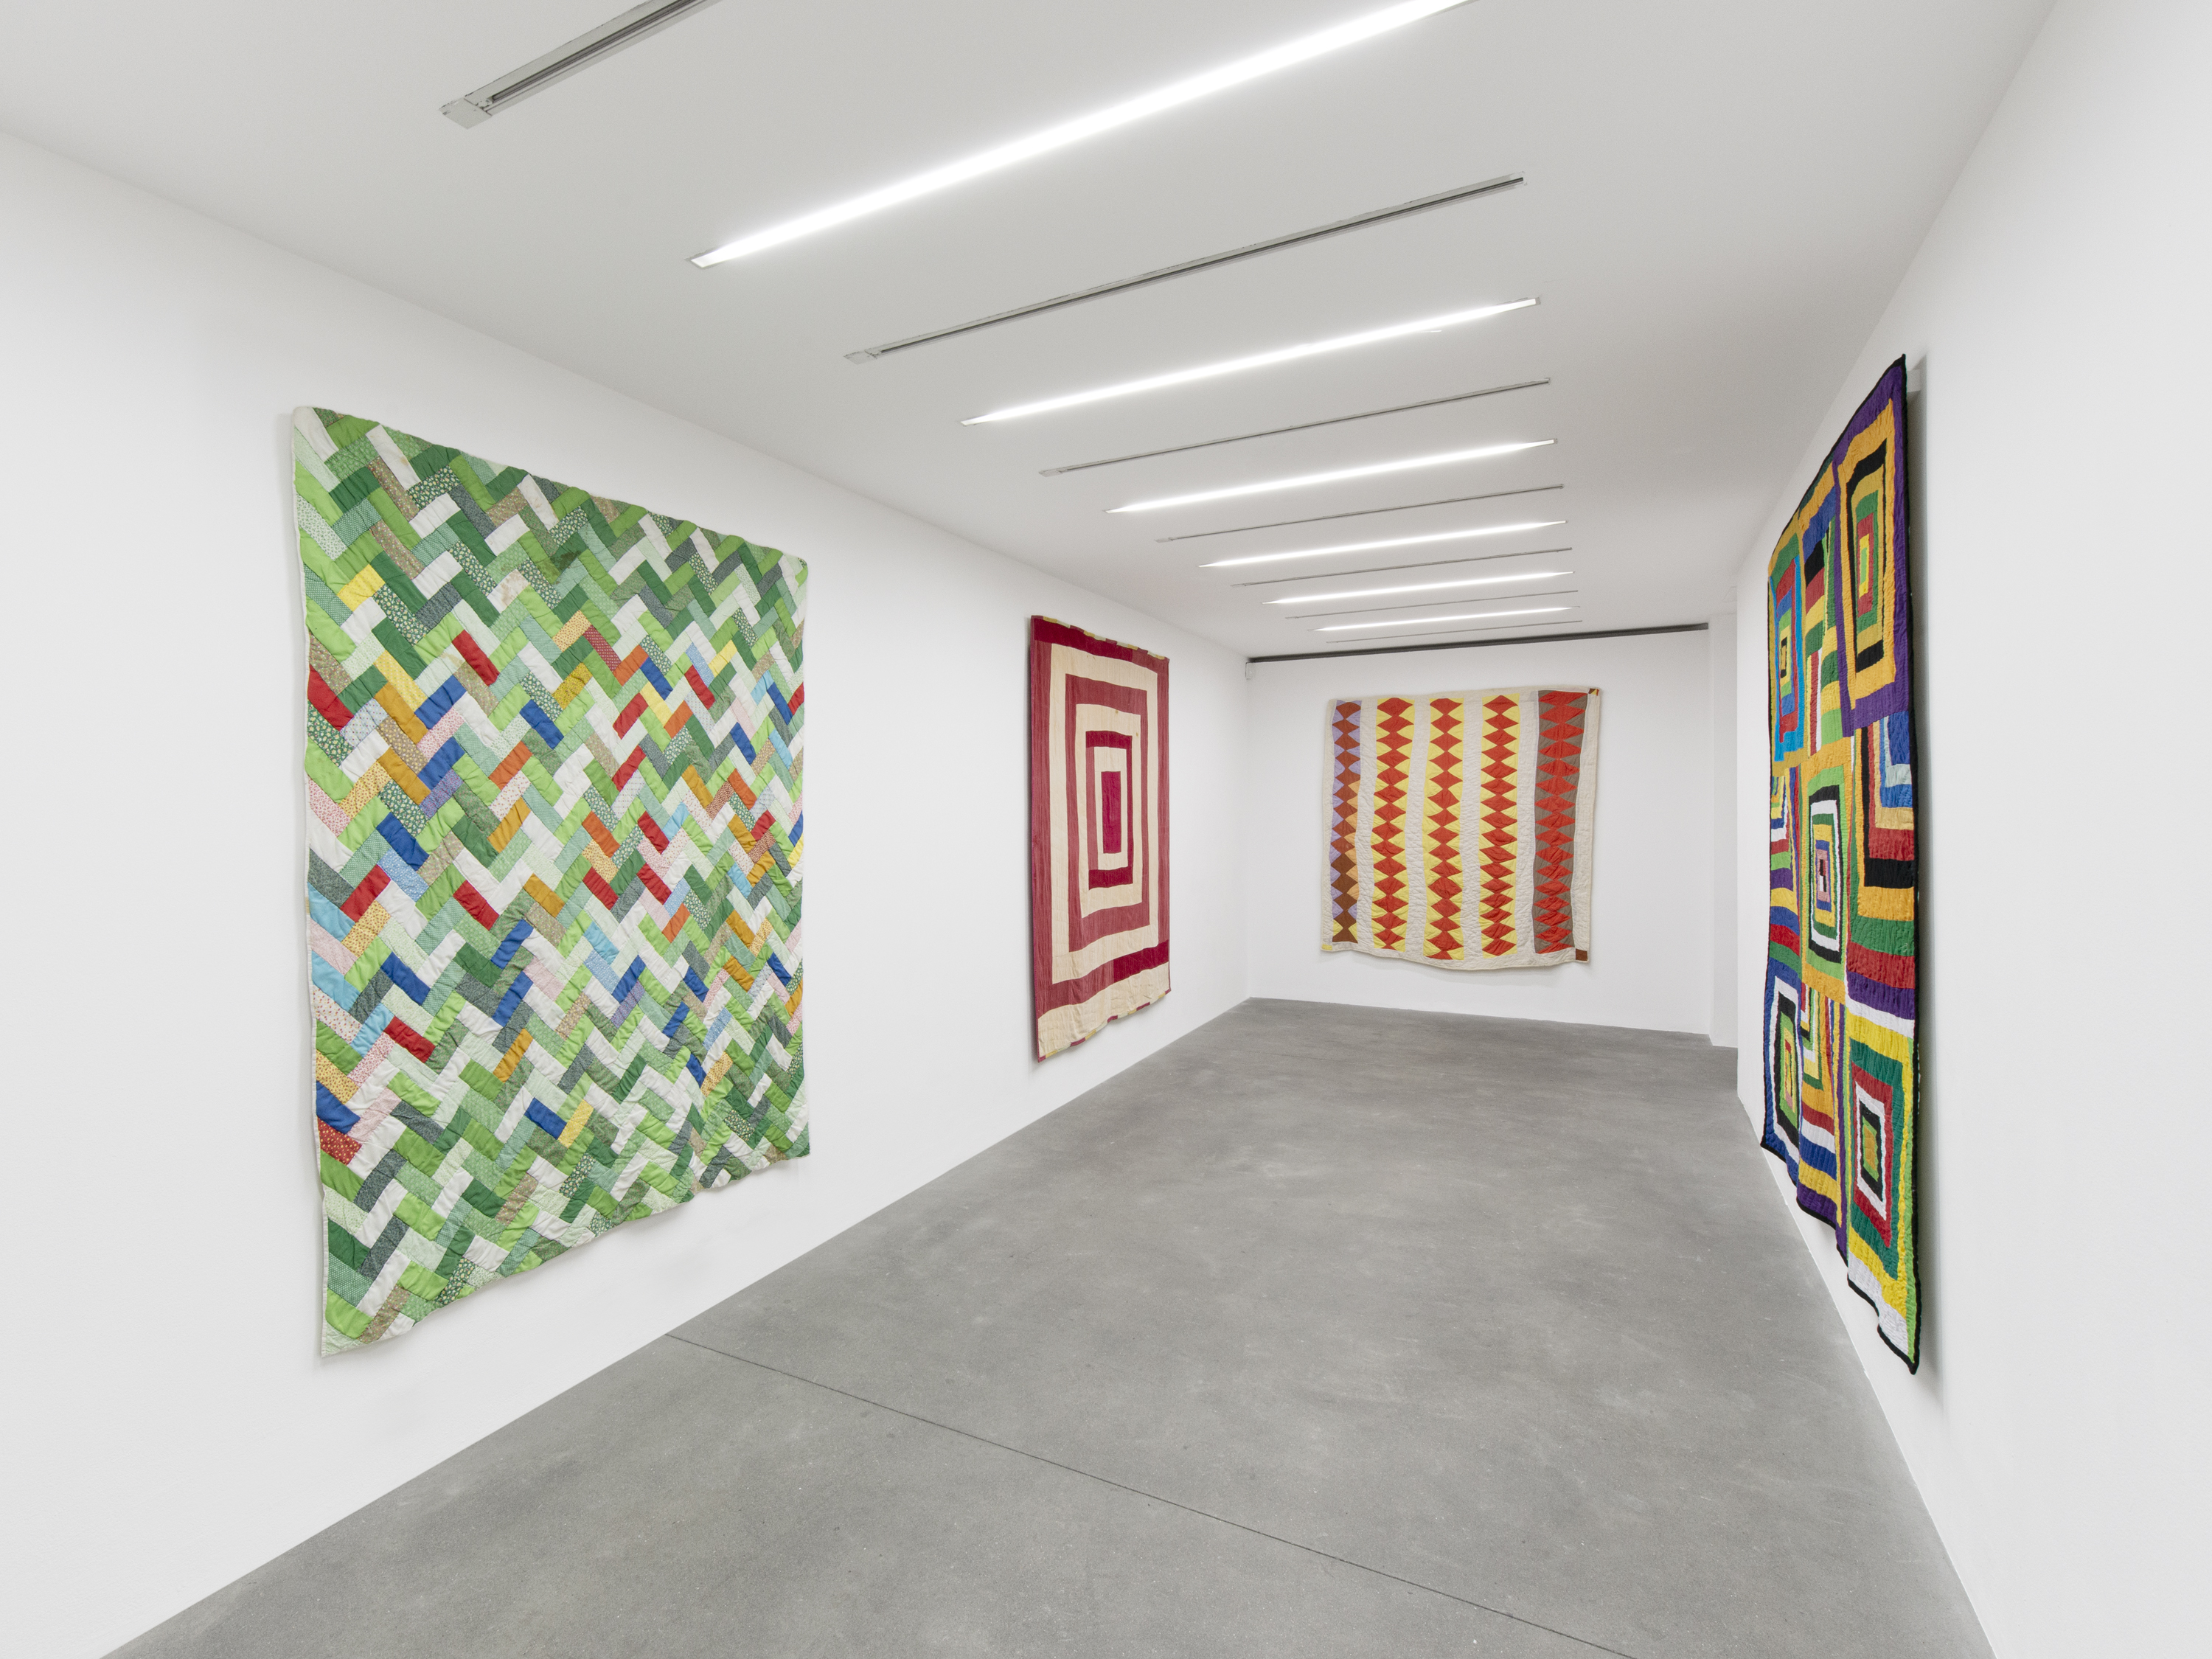 Installation View 4, THE GEE'S BEND QUILTMAKERS, Alison Jacques Gallery, 2021, All images courtesy of Alison Jacques Gallery